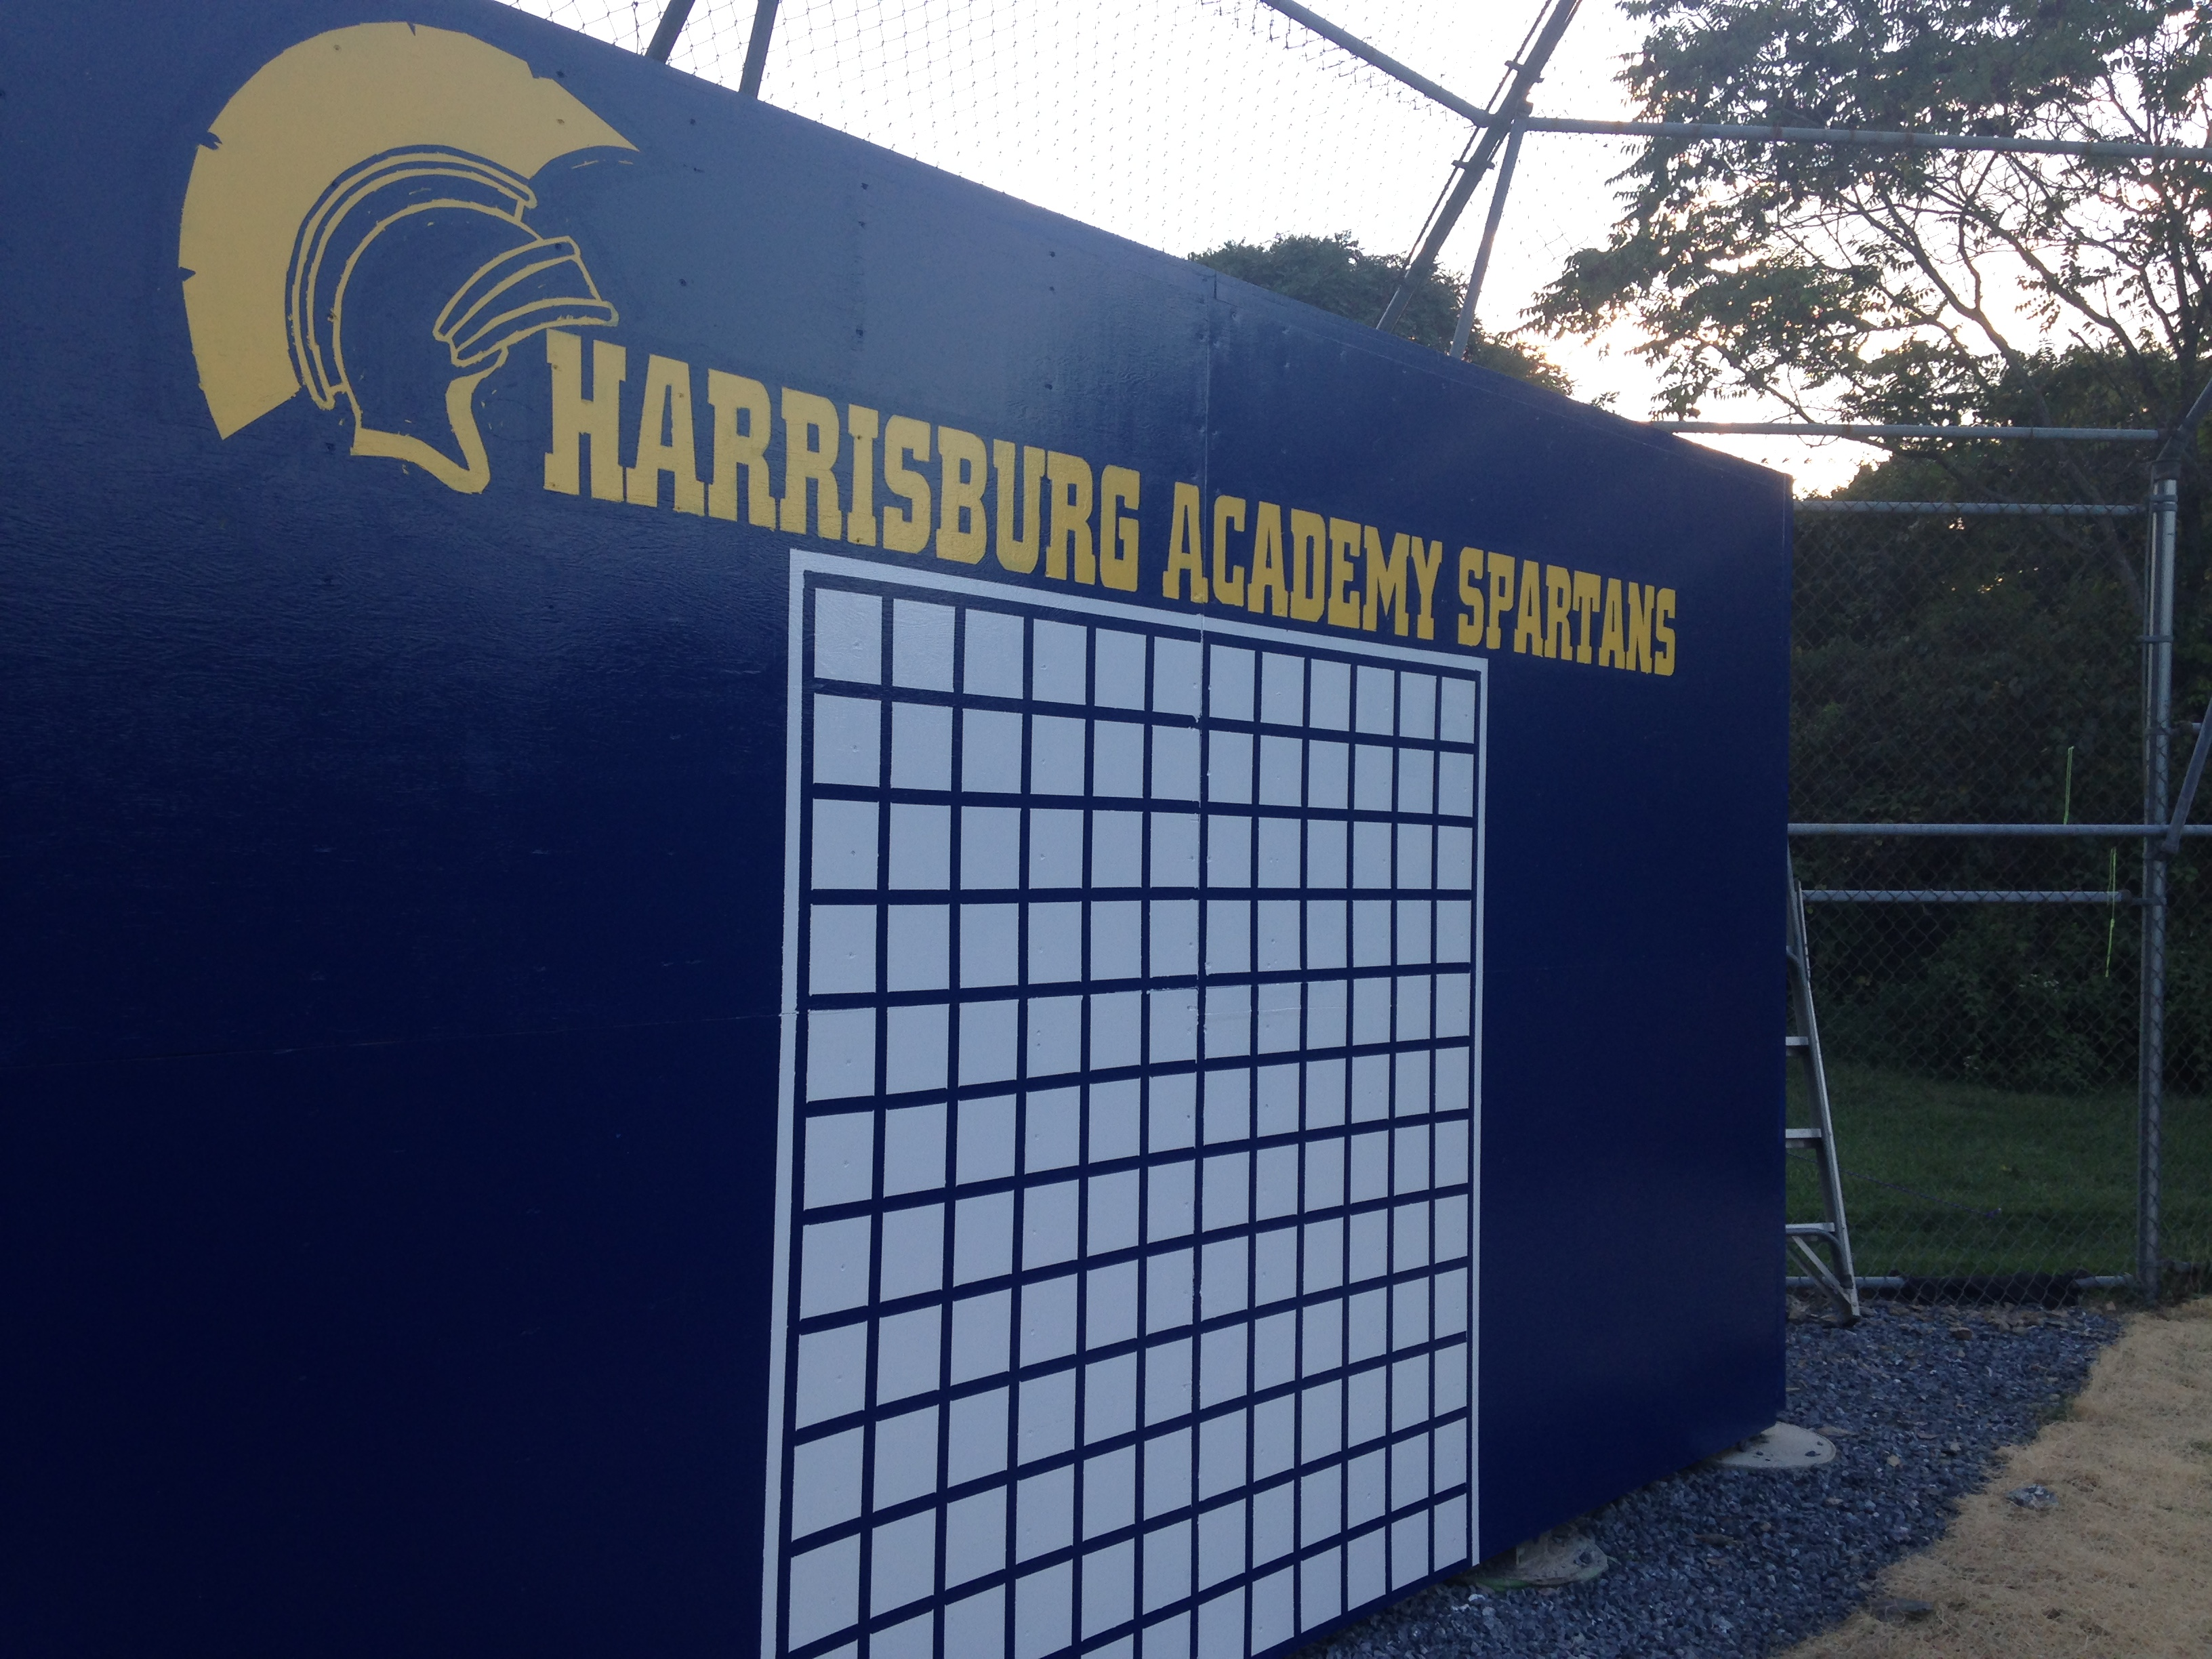 8'x 16' lacrosse practice wall for Harrisburg Academy team